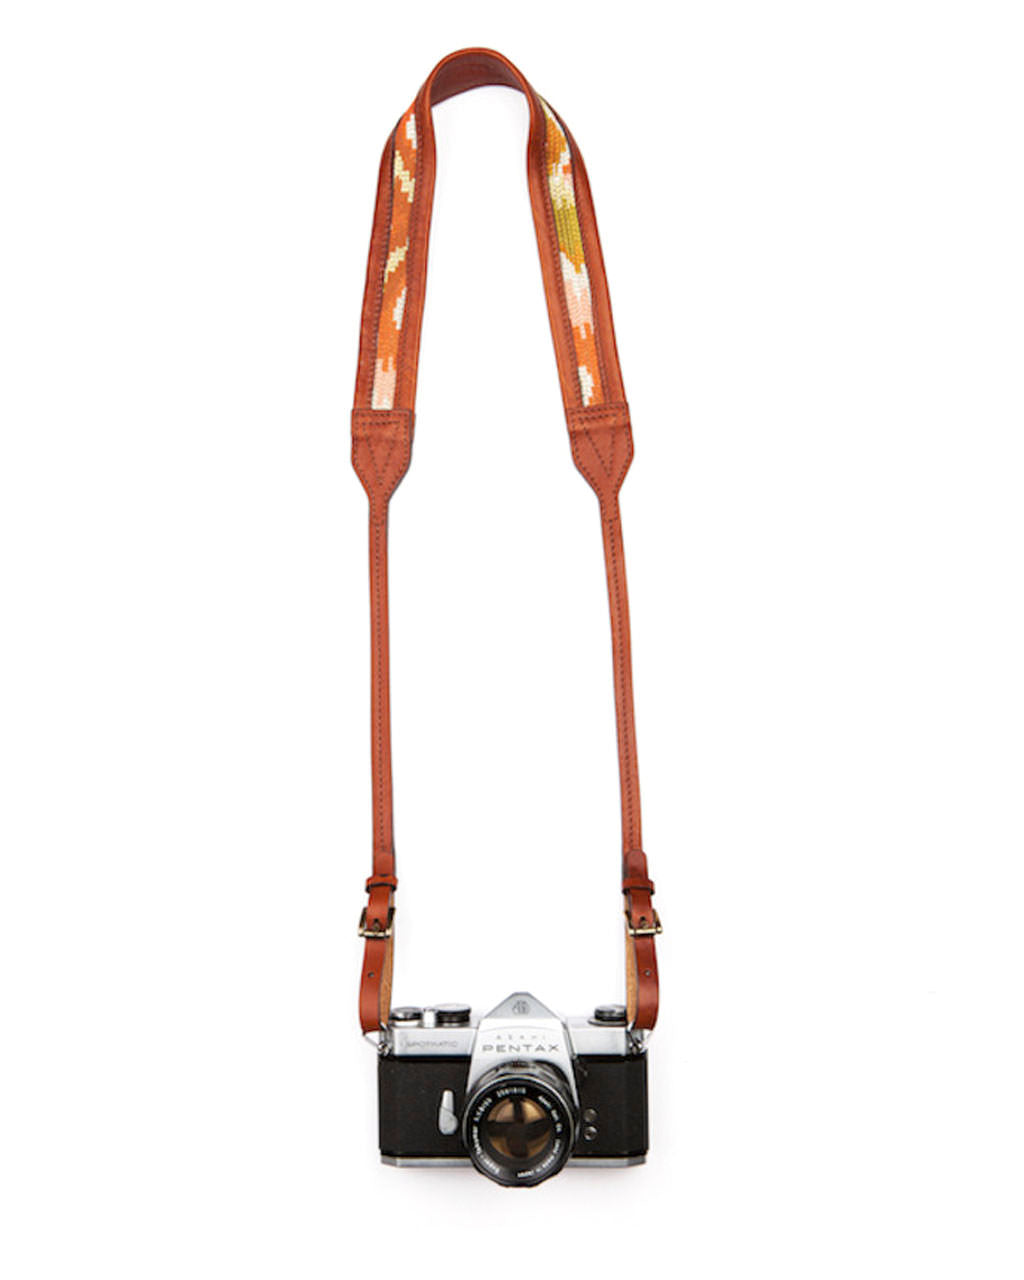 Camera with leather camera strap